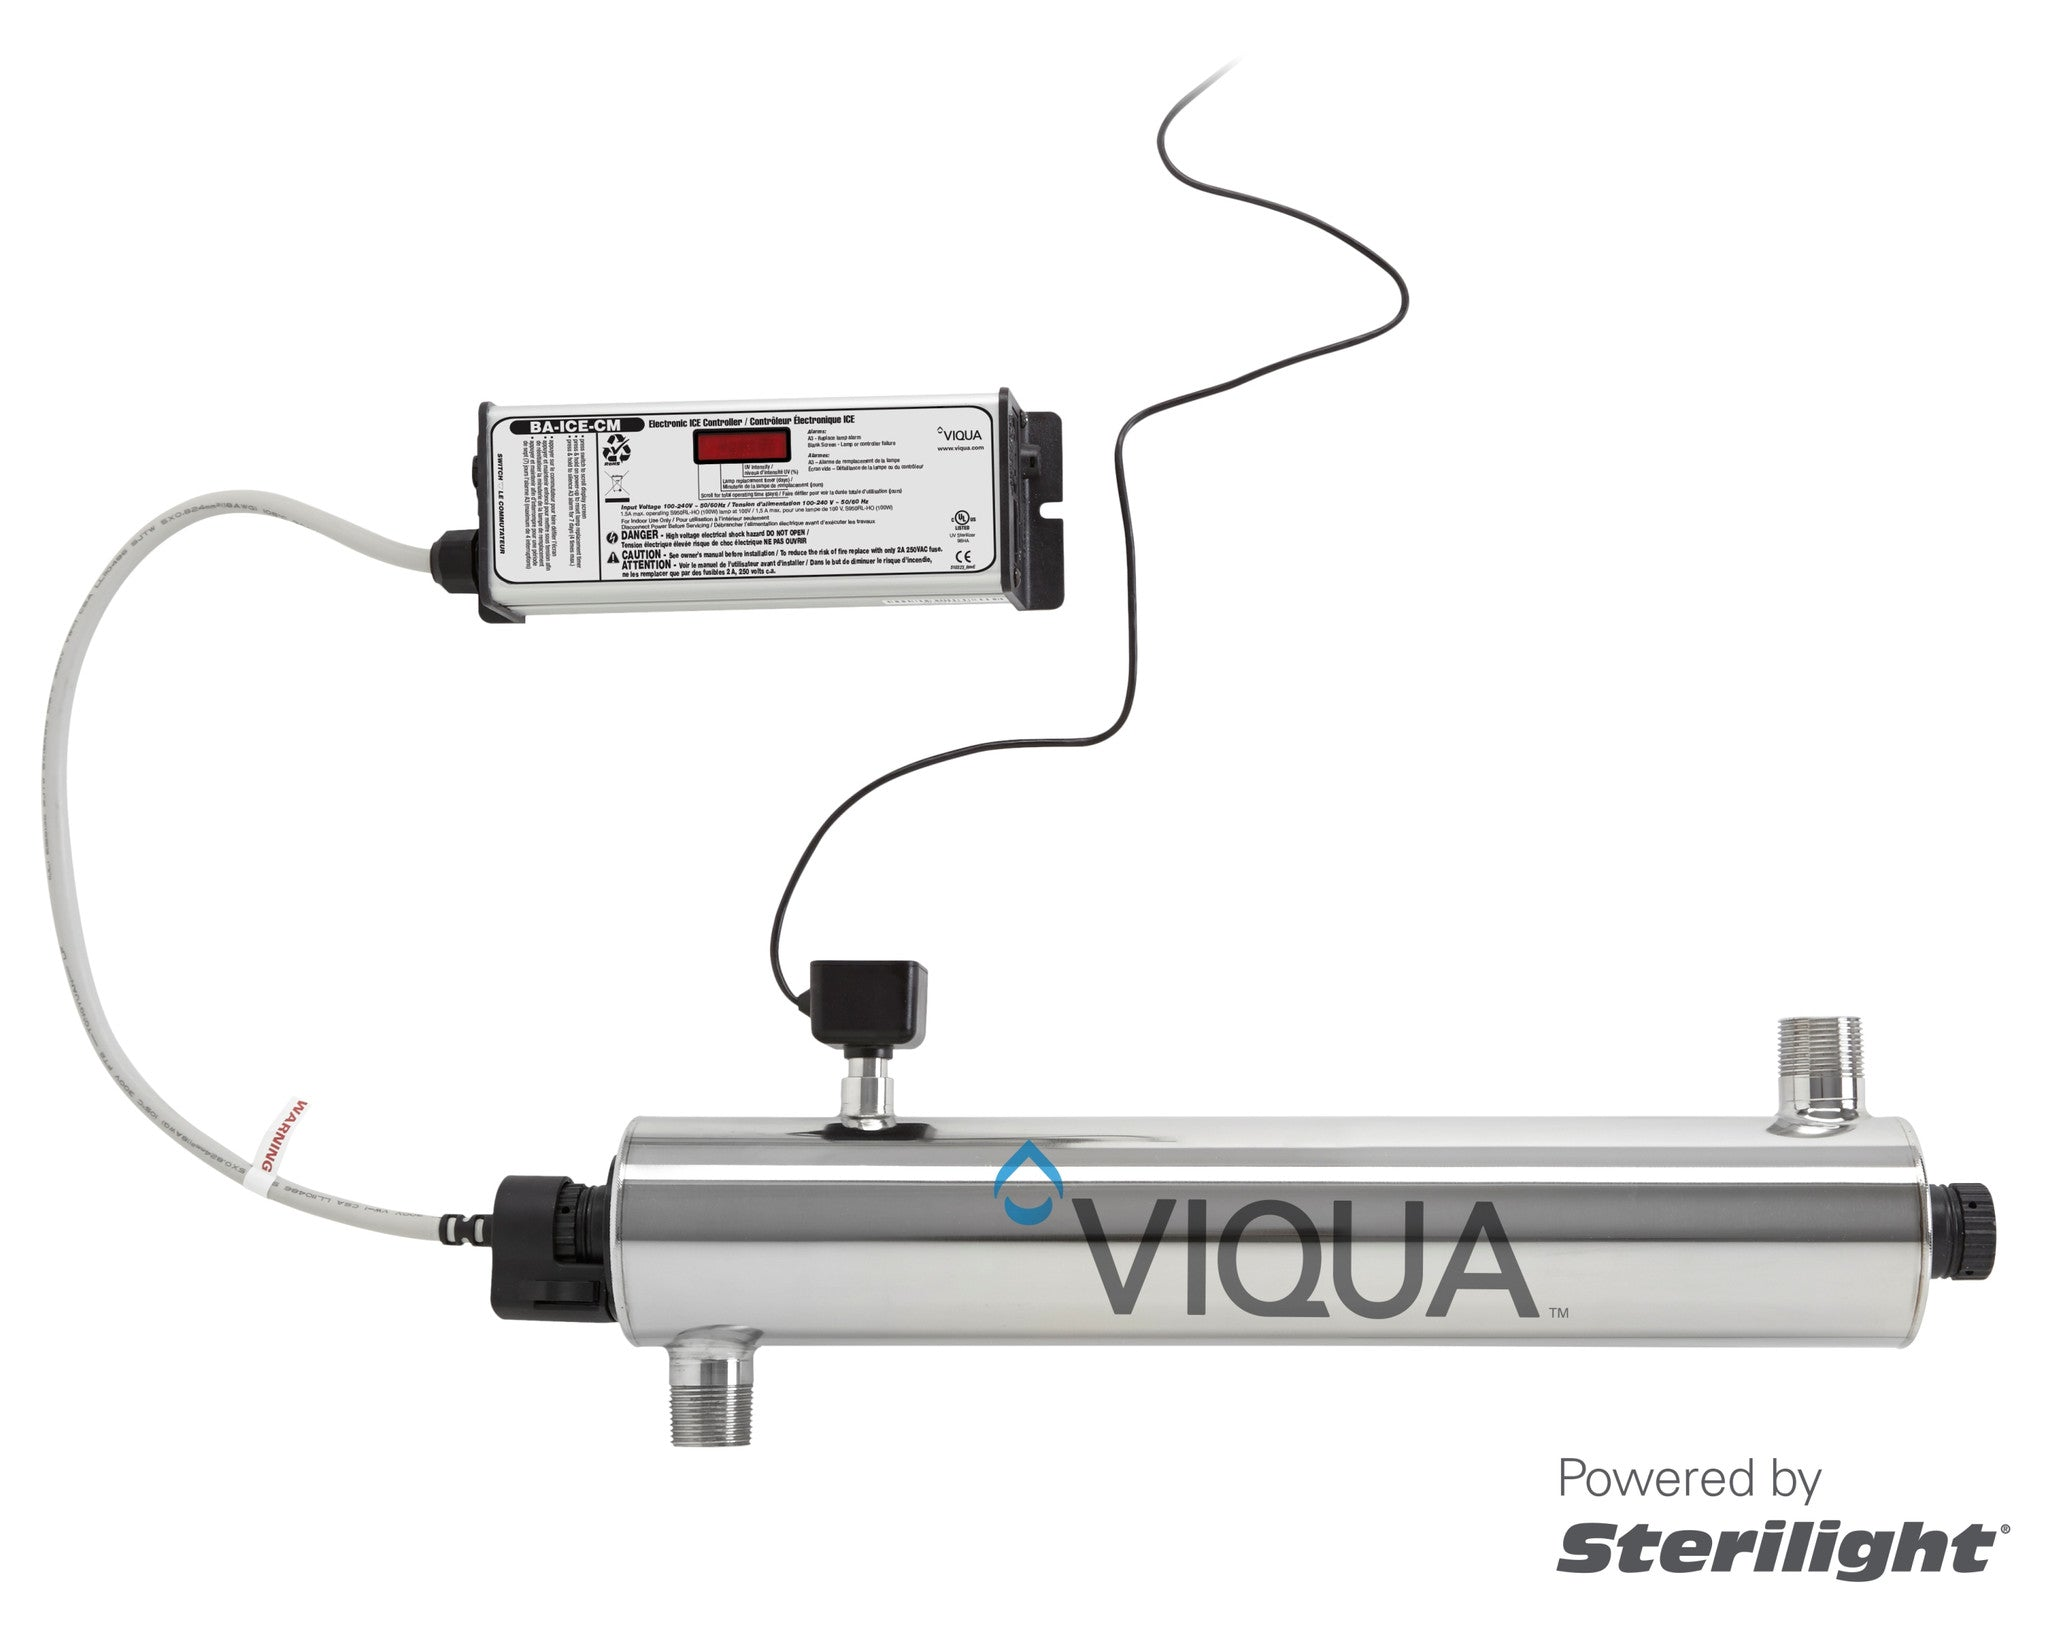 Viqua 18 GPM Monitored UV System Part #VH410M